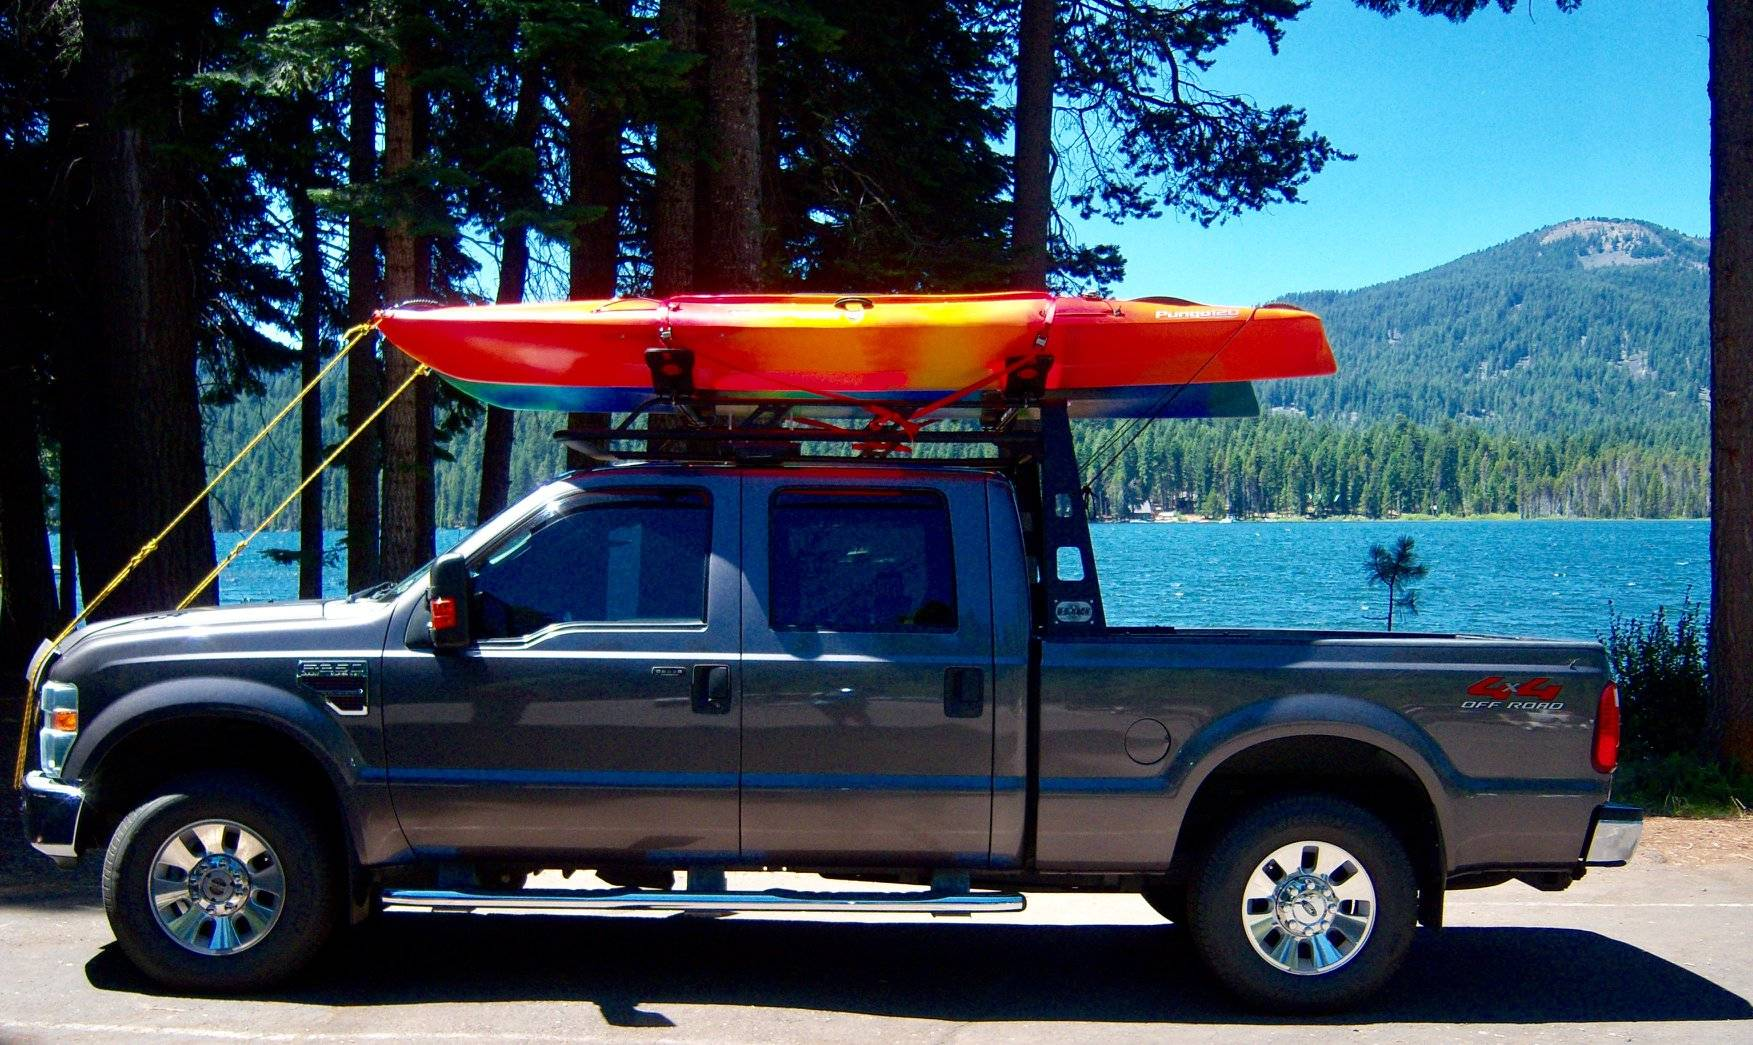 2007 2021 Toyota Tundra Fifth Wheel 6 Rack Without Crossbar Without Deck Black 6 Ft Over